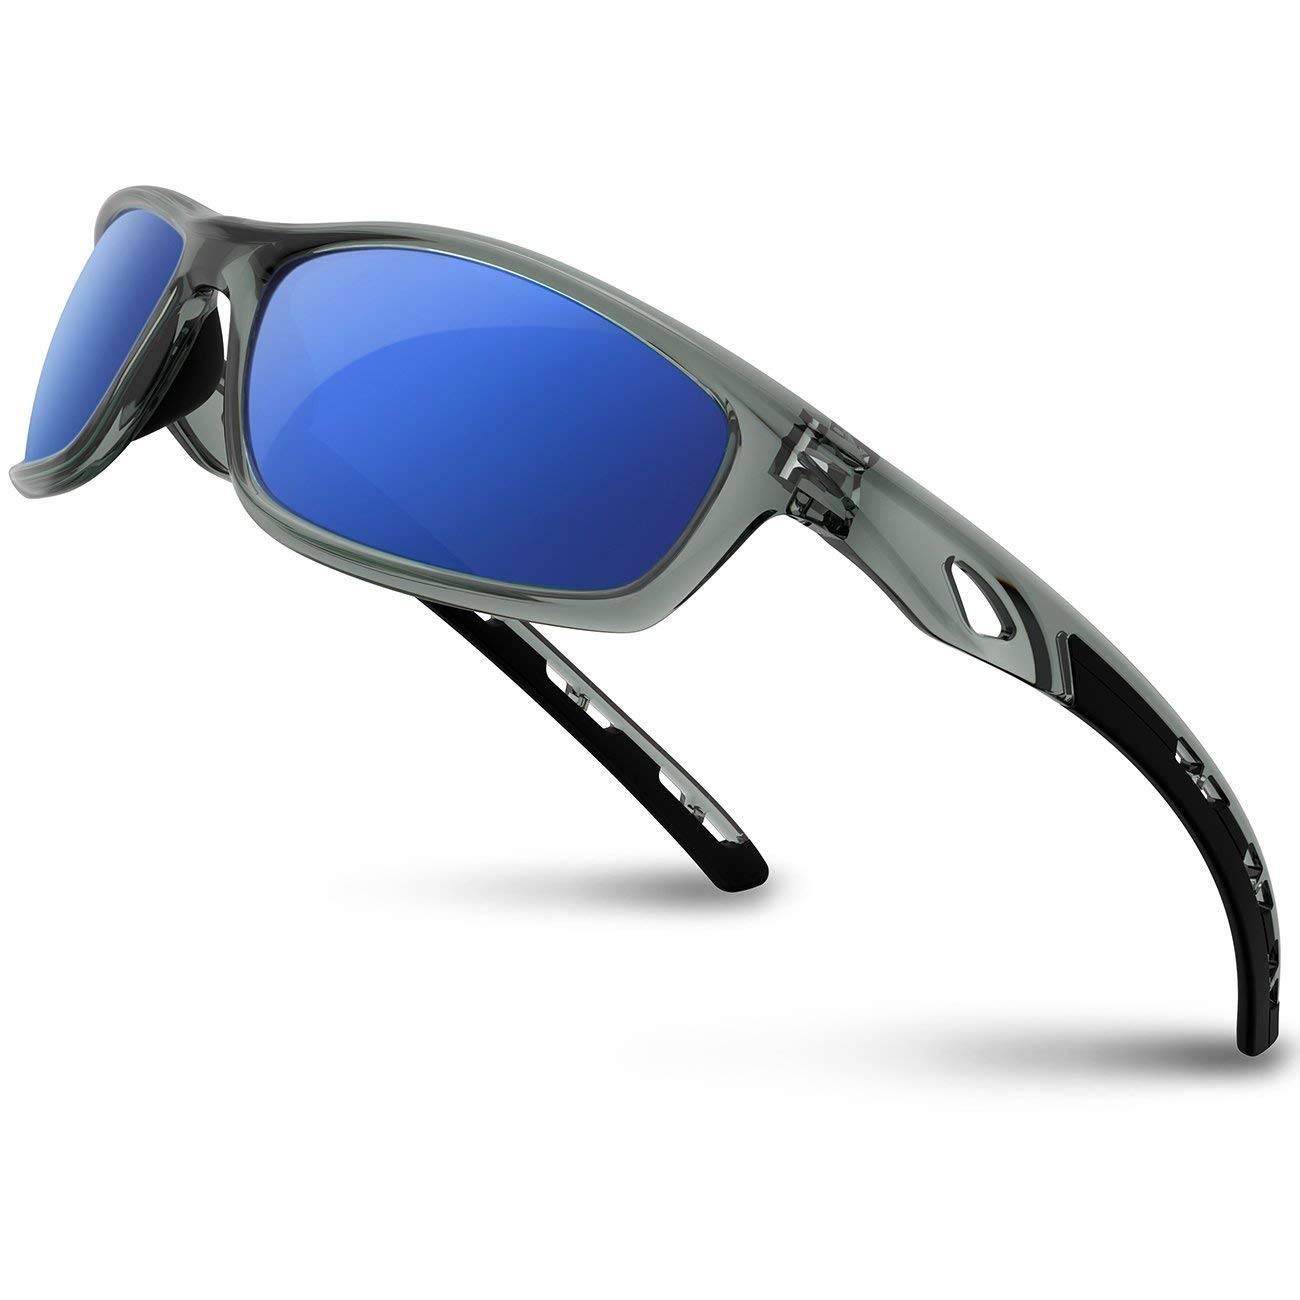 RIVBOS Polarized Sports Sunglasses – TR90 Unbreakable Frame